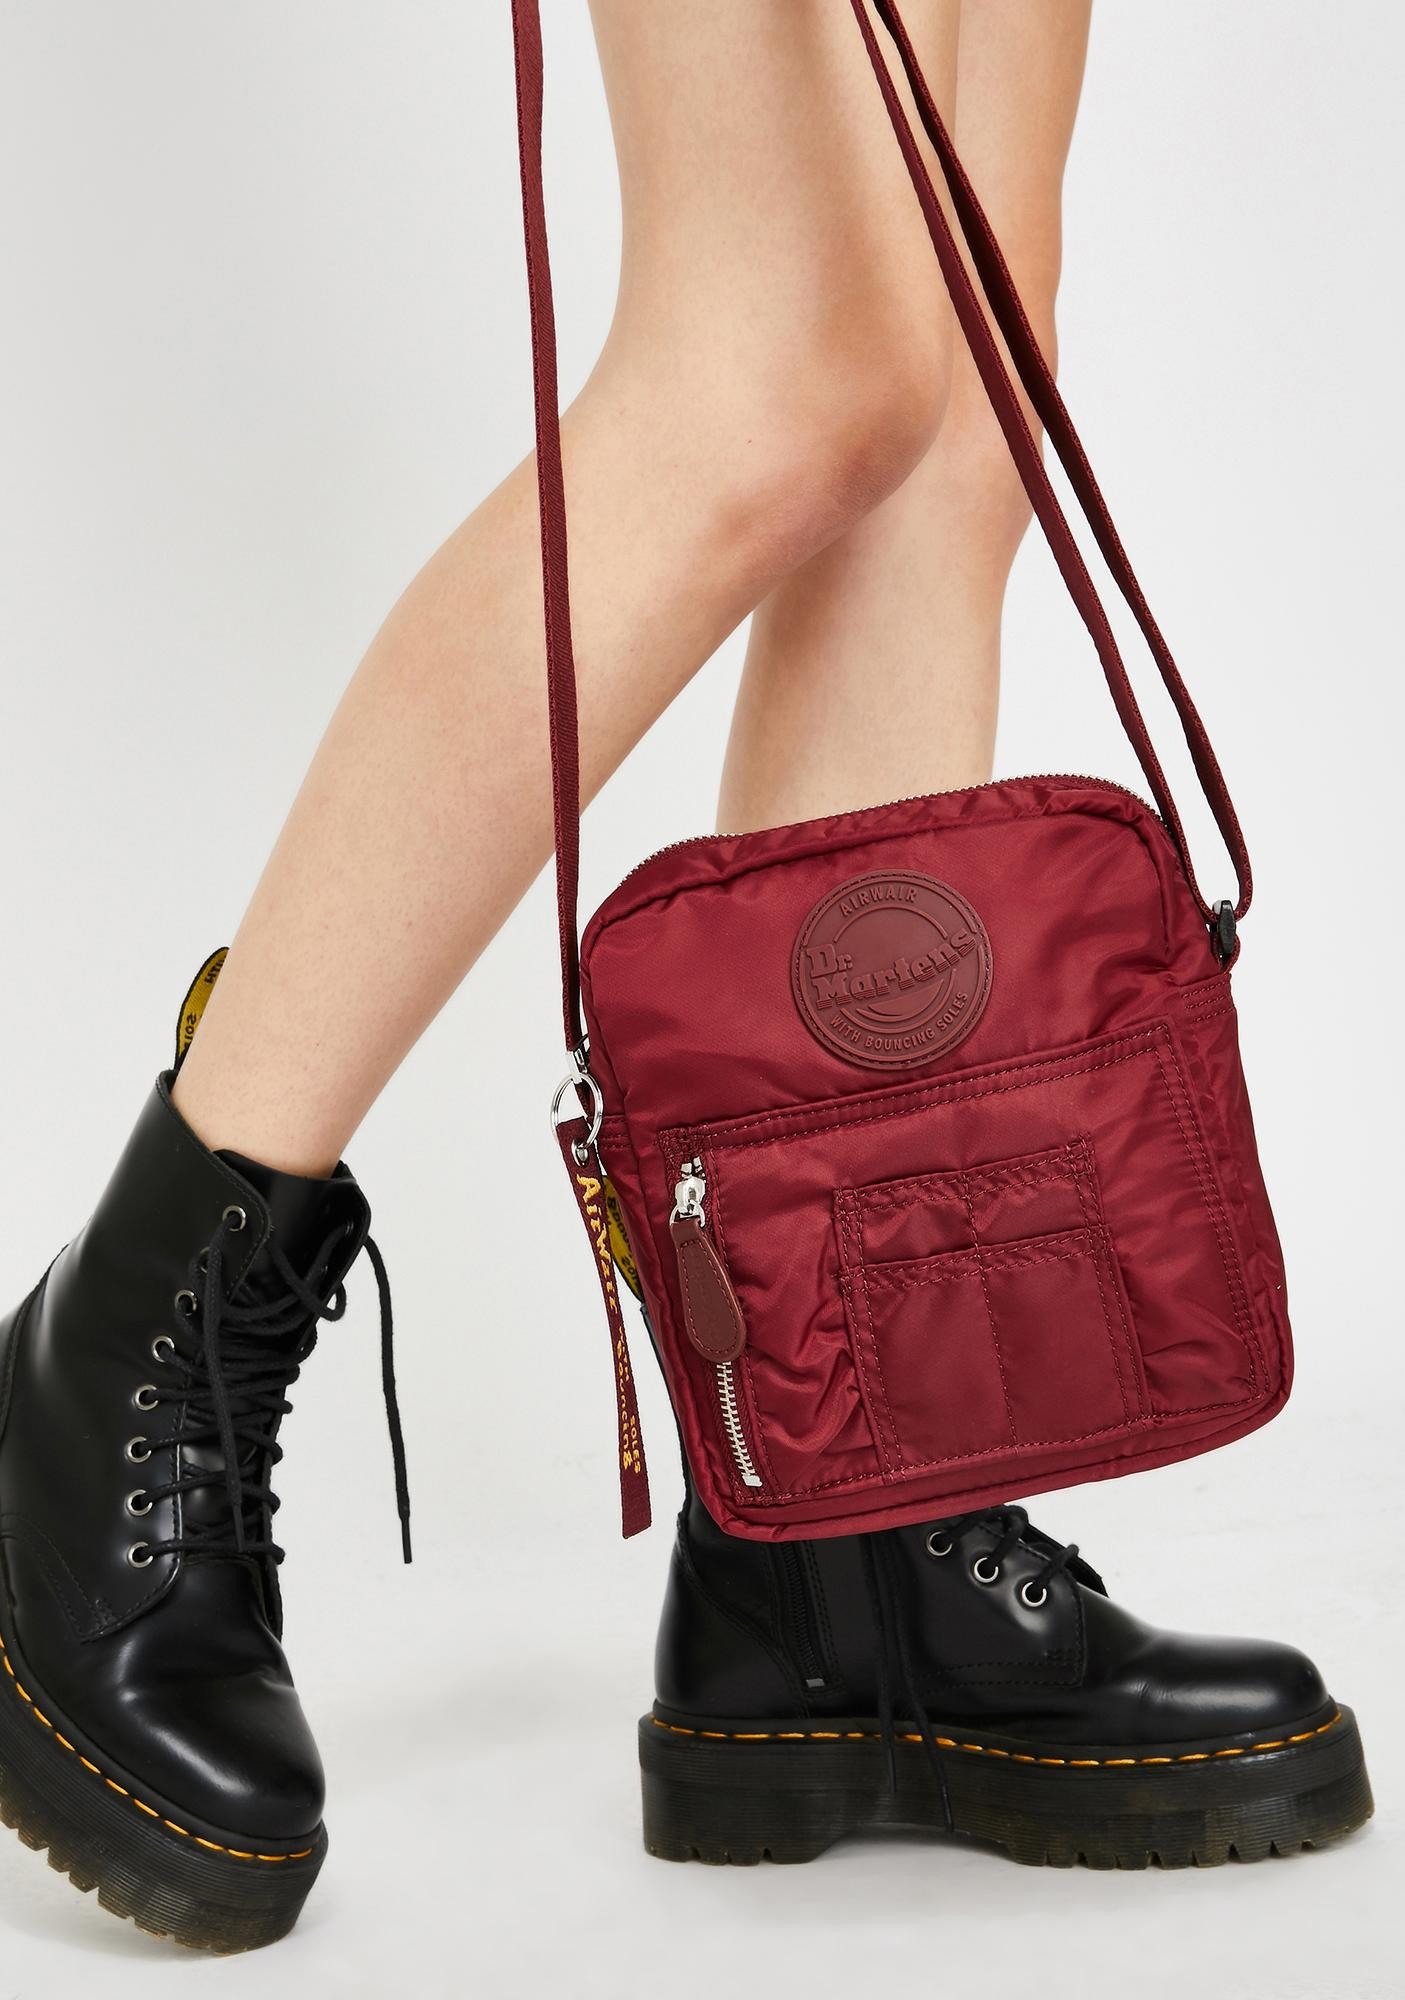 Dr. Martens Cherry Red Super Mini Nylon Bag